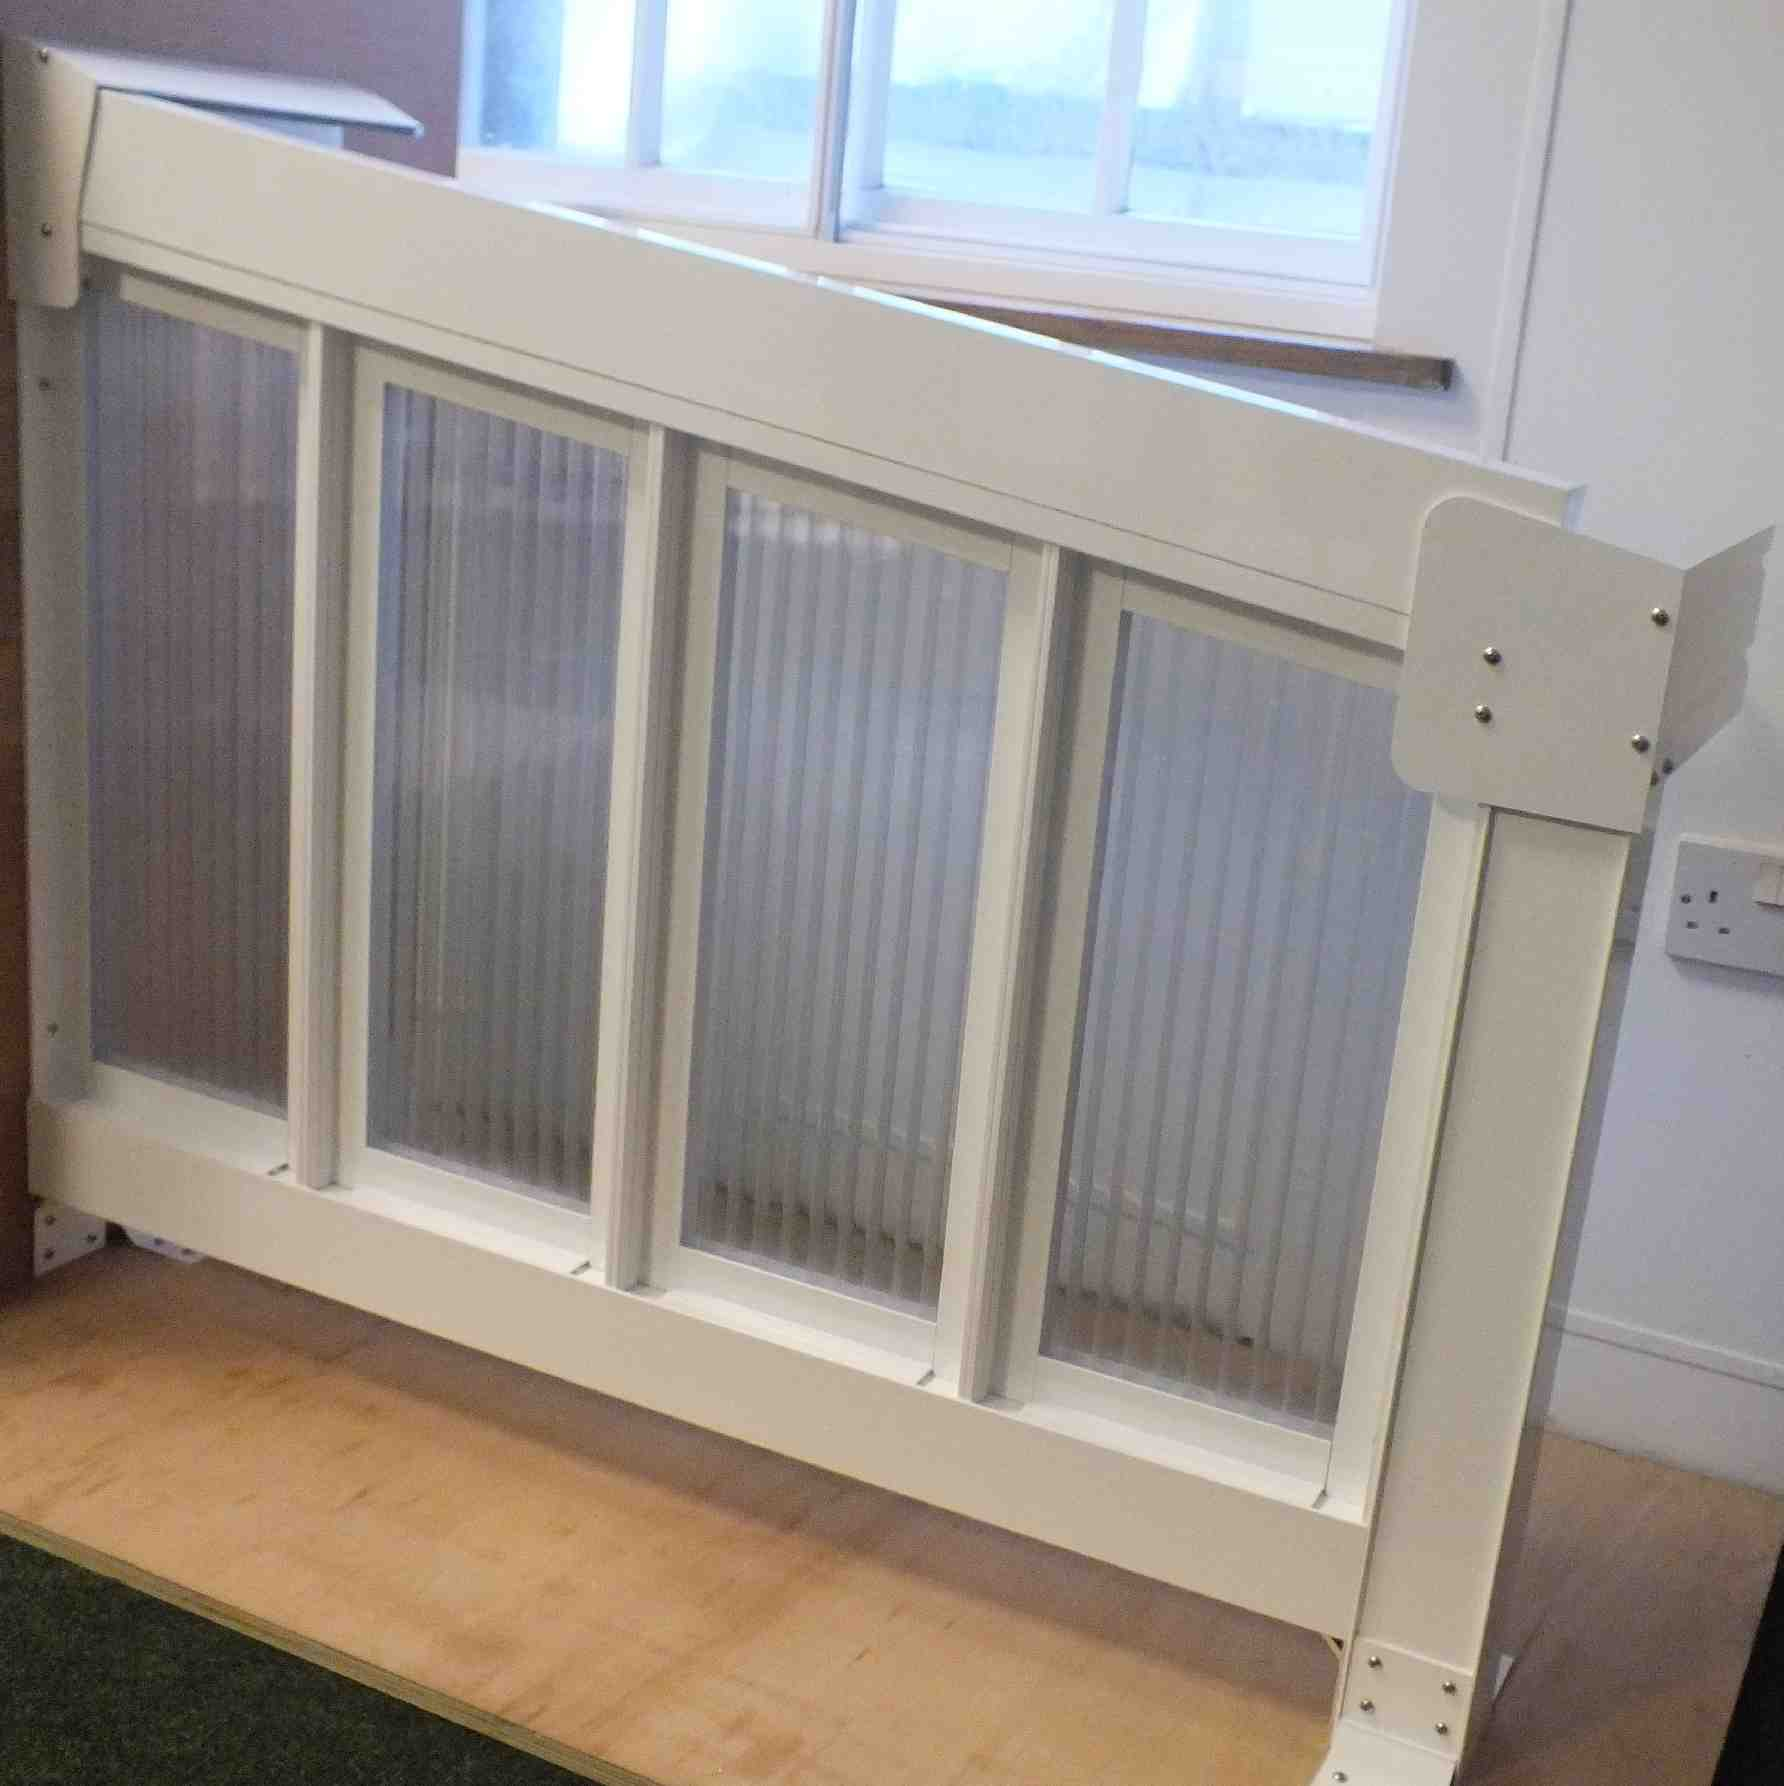 Buy Omega Smart Canopy - FULL Side In-Fill Section for Sides of Canopy, 6mm Glass Clear Plate Polycarbonate In-Fill Panels, White Frame online today